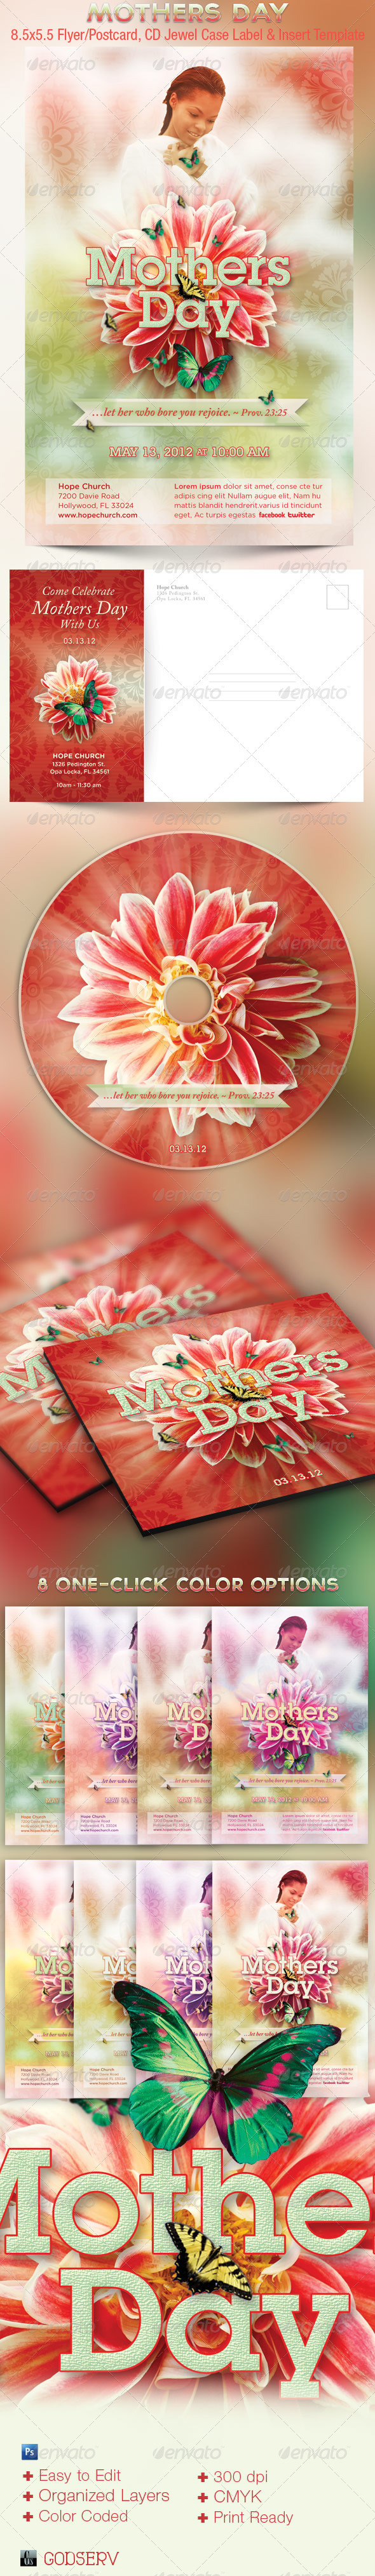 Mothers Day Church Flyer CD Template - Church Flyers